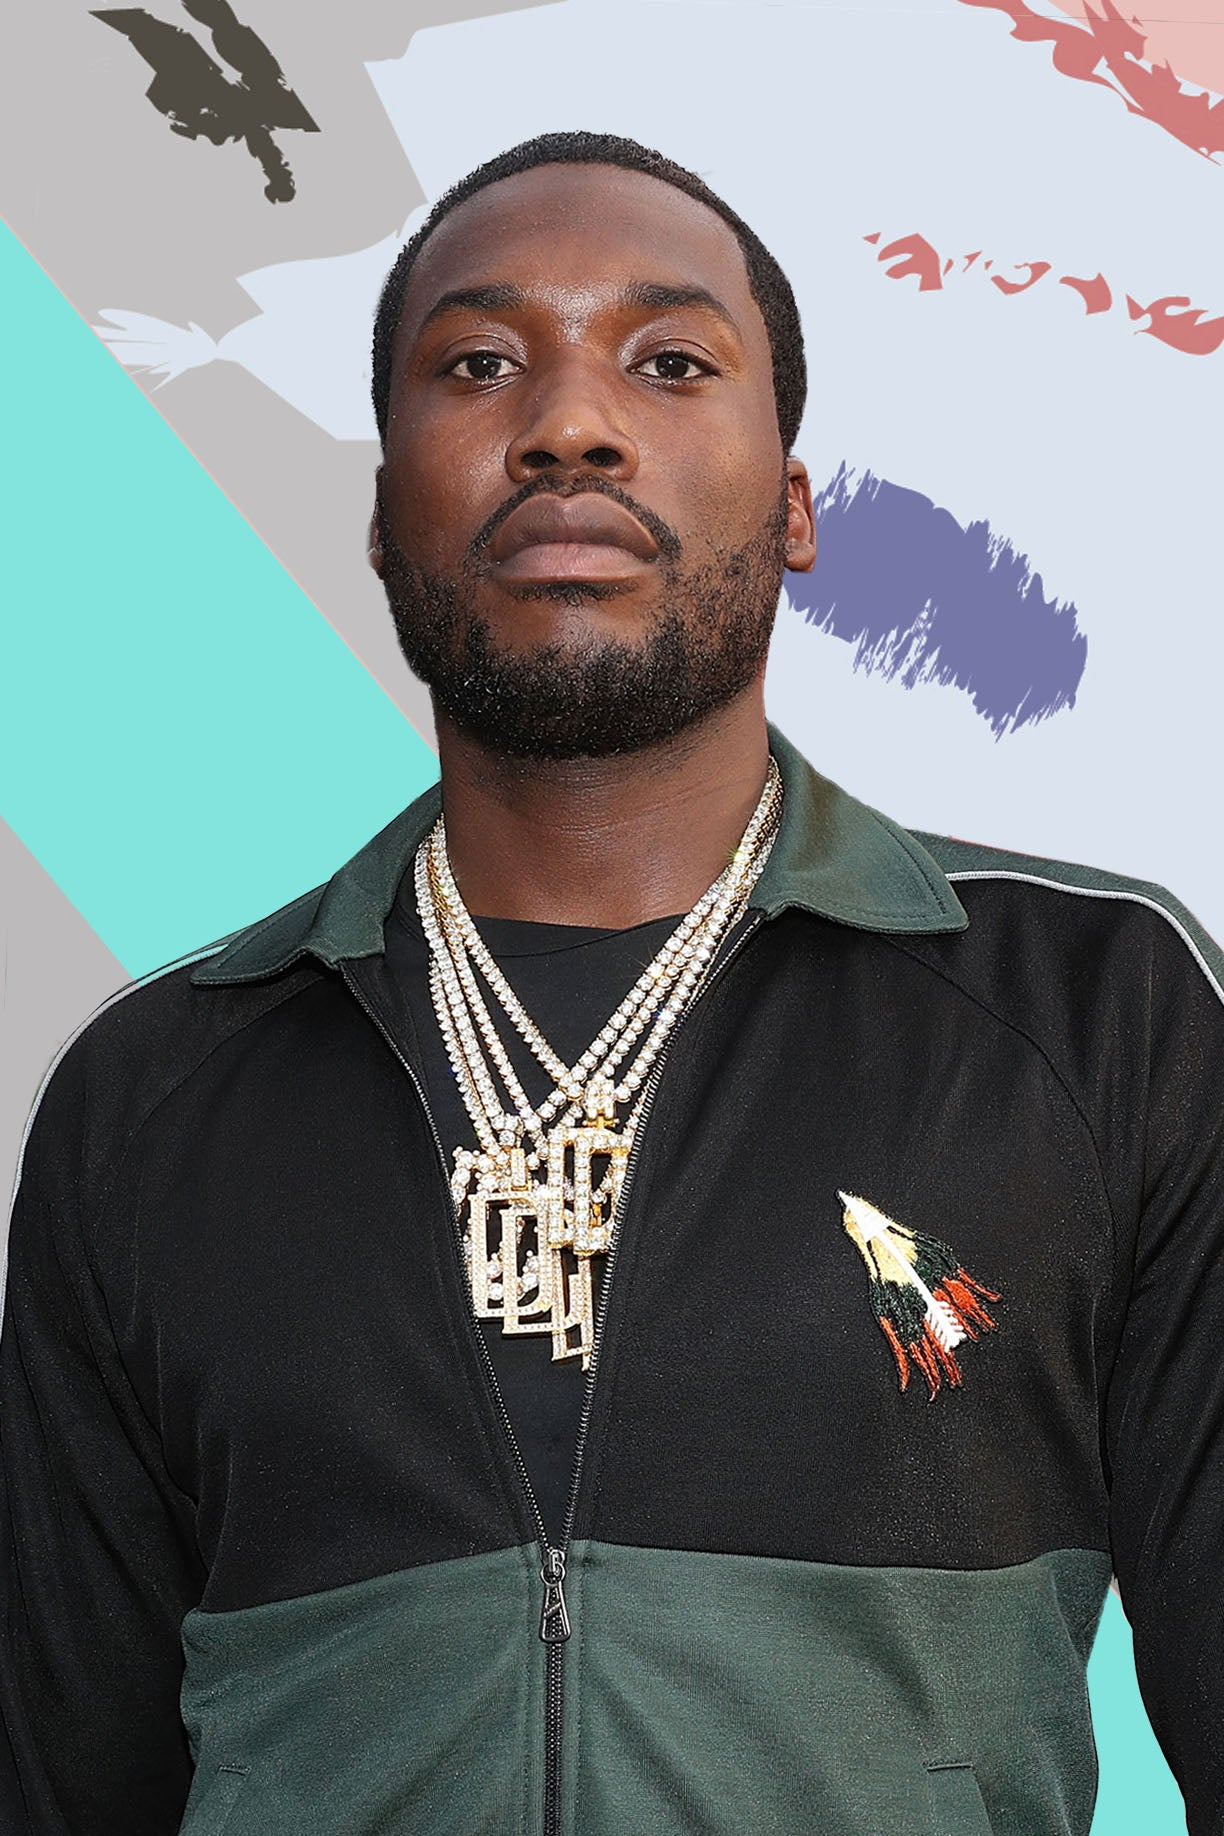 Meek Mill Officially A Free Man After Pennsylvania Supreme Court Orders Immediate Release